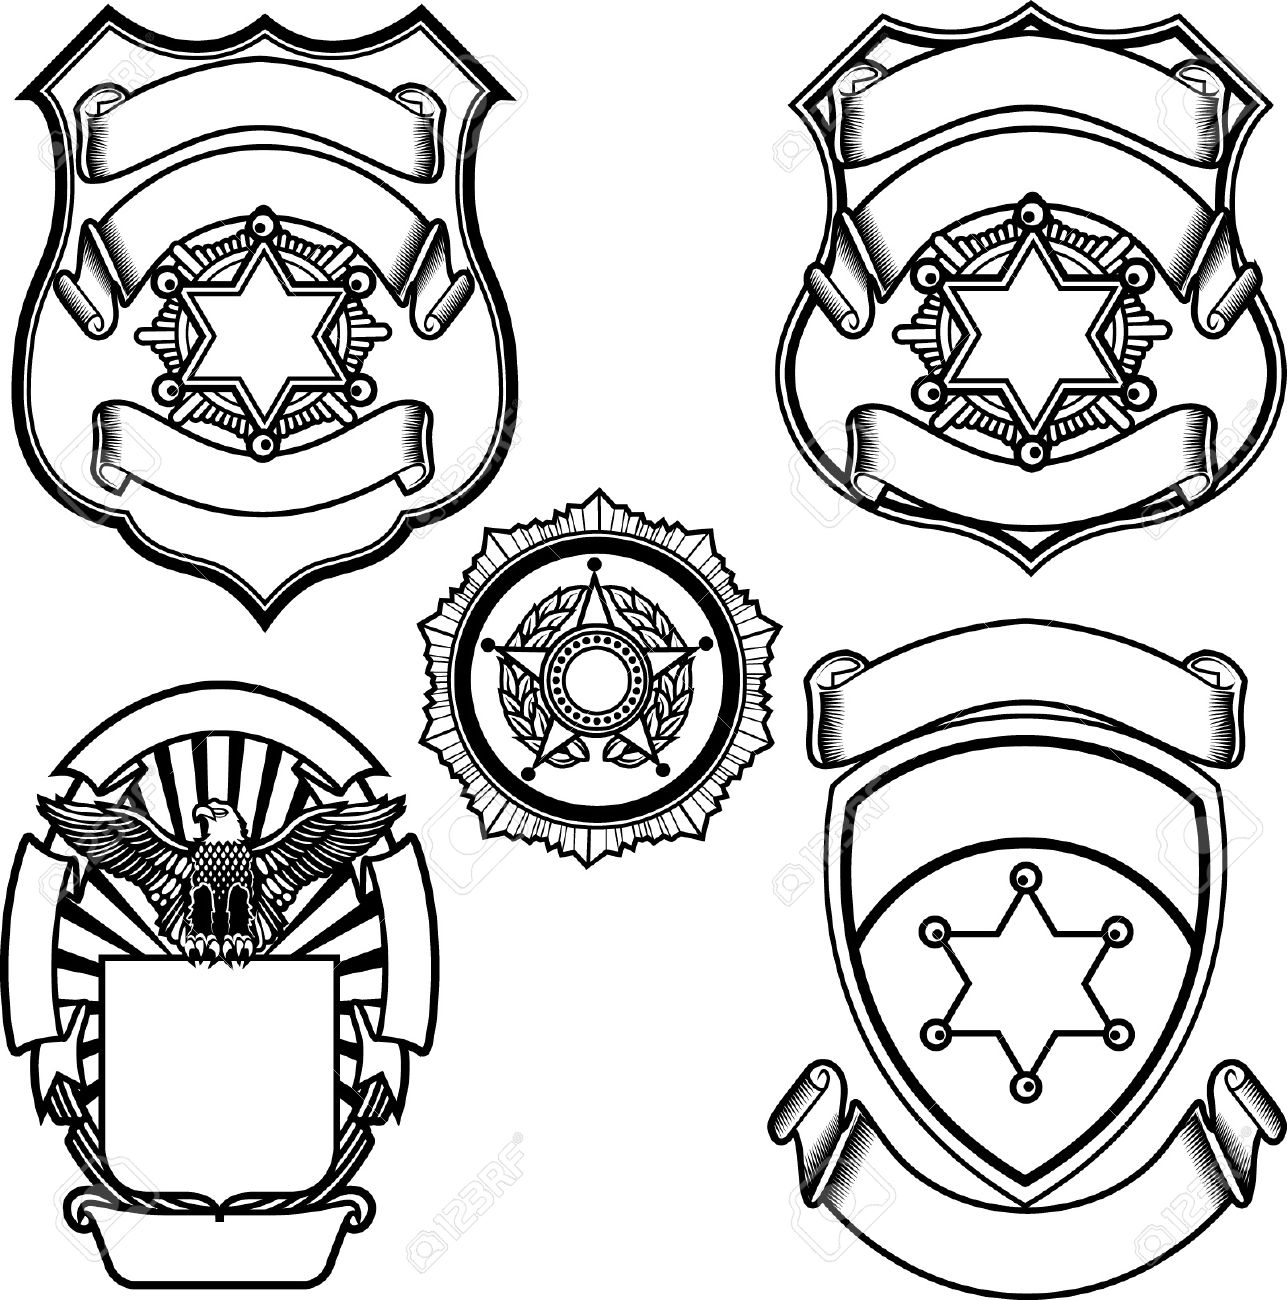 1287x1300 Pictures Of Sheriff Badges Group